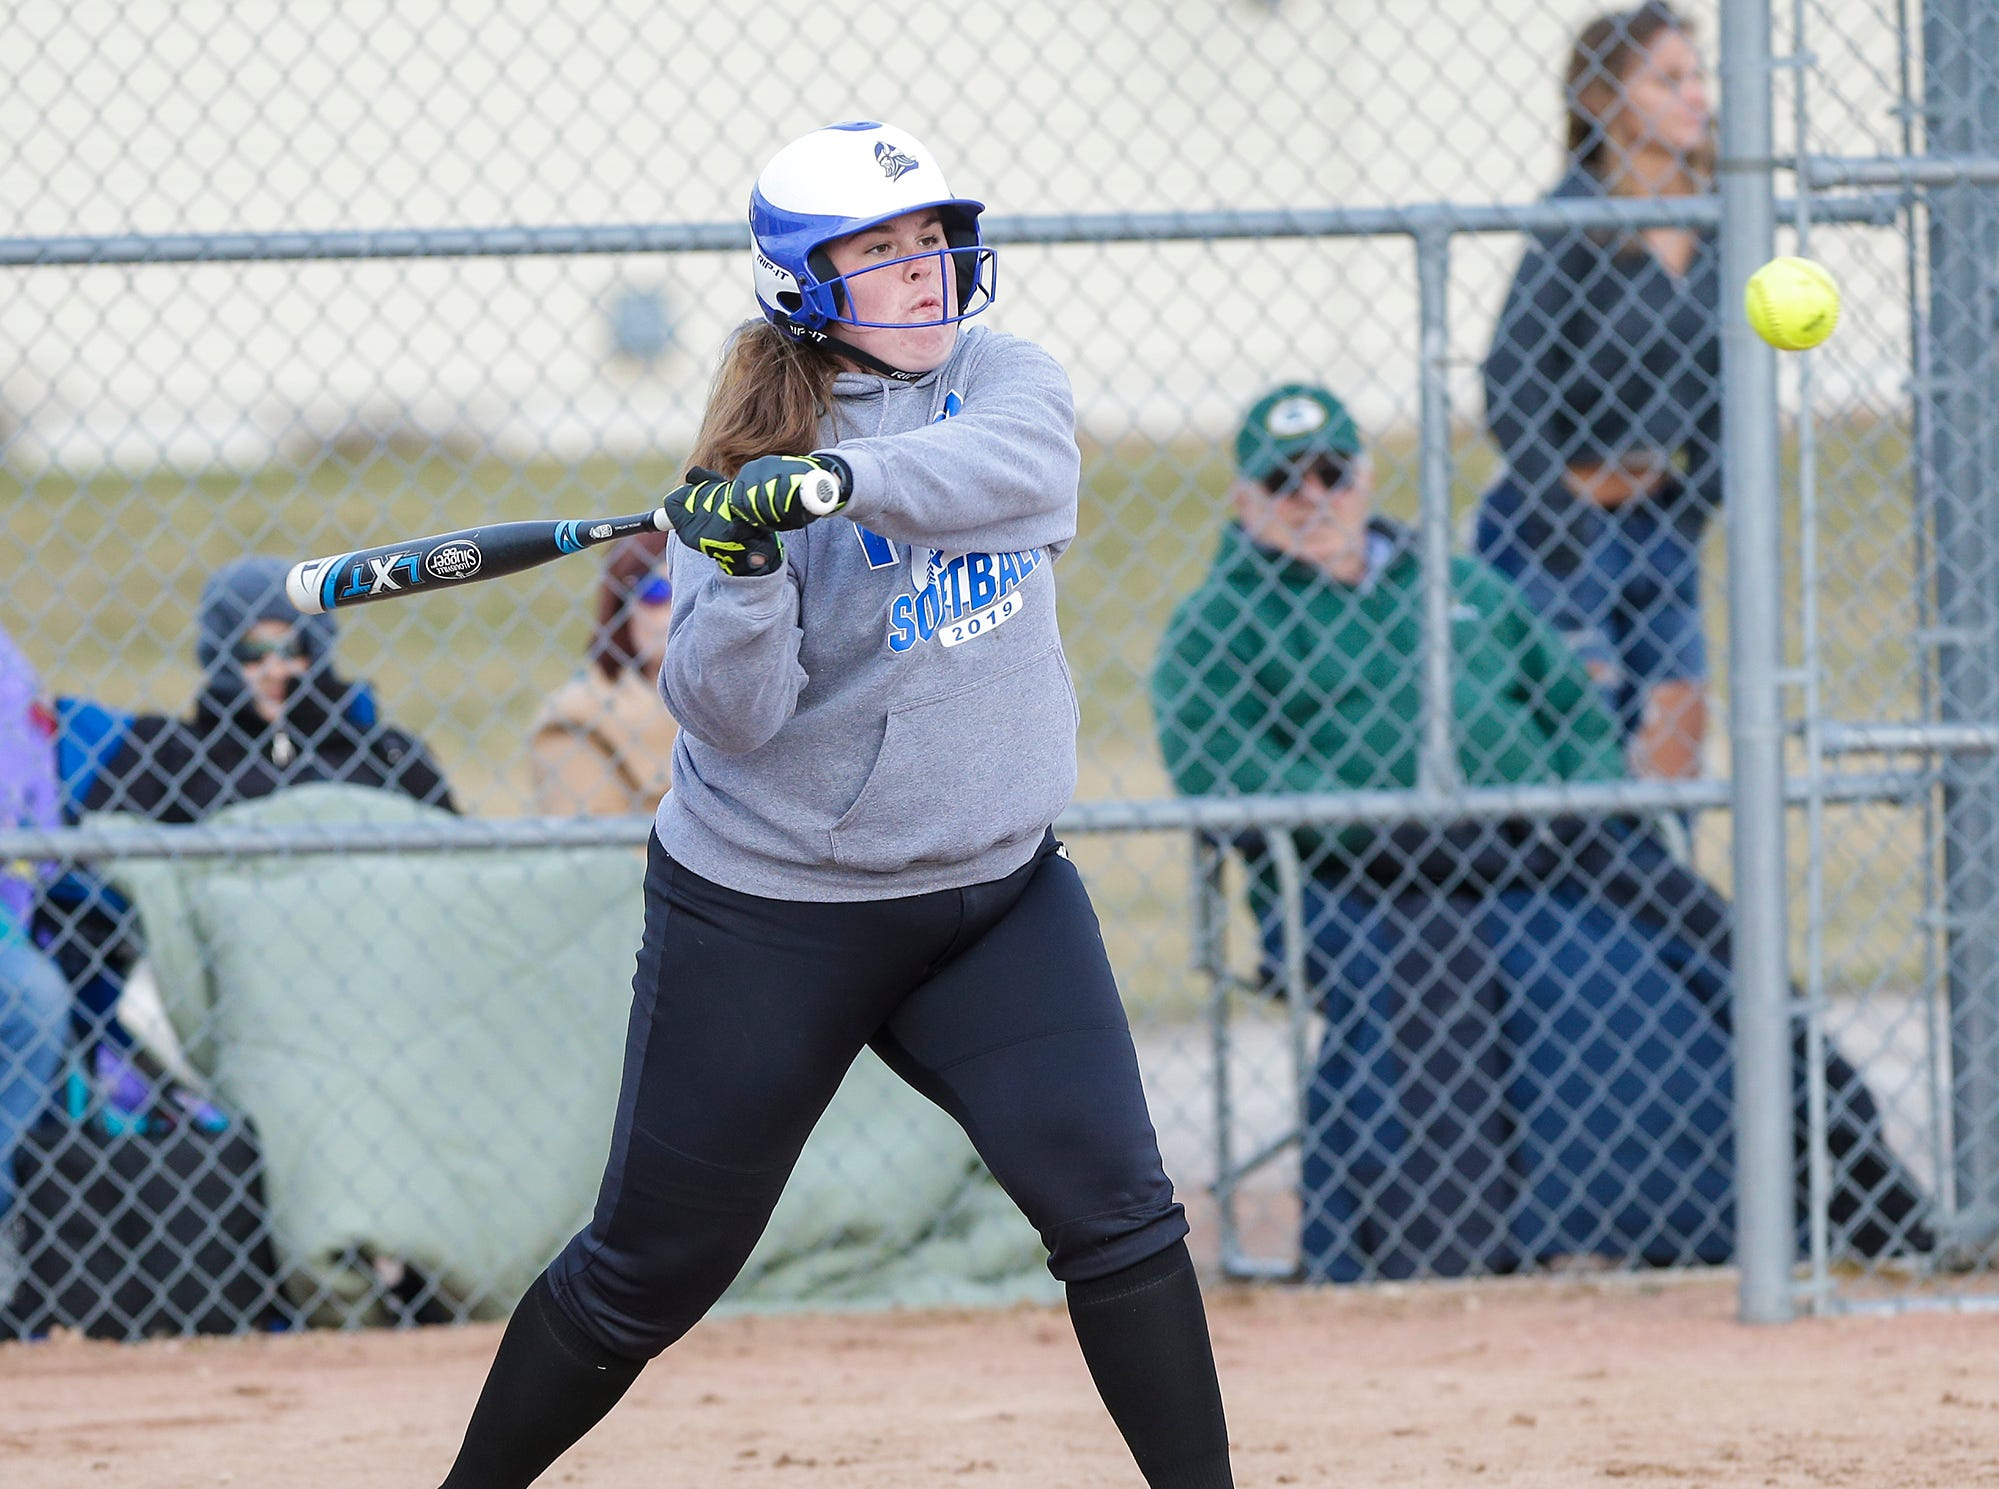 Winnebago Lutheran Academy softball's Brooklin Kingsland hits a single in the third inning against Laconia High School April 9, 2019 during their game in Fond du Lac, Wis. Laconia won the game 25-9. Doug Raflik/USA TODAY NETWORK-Wisconsin